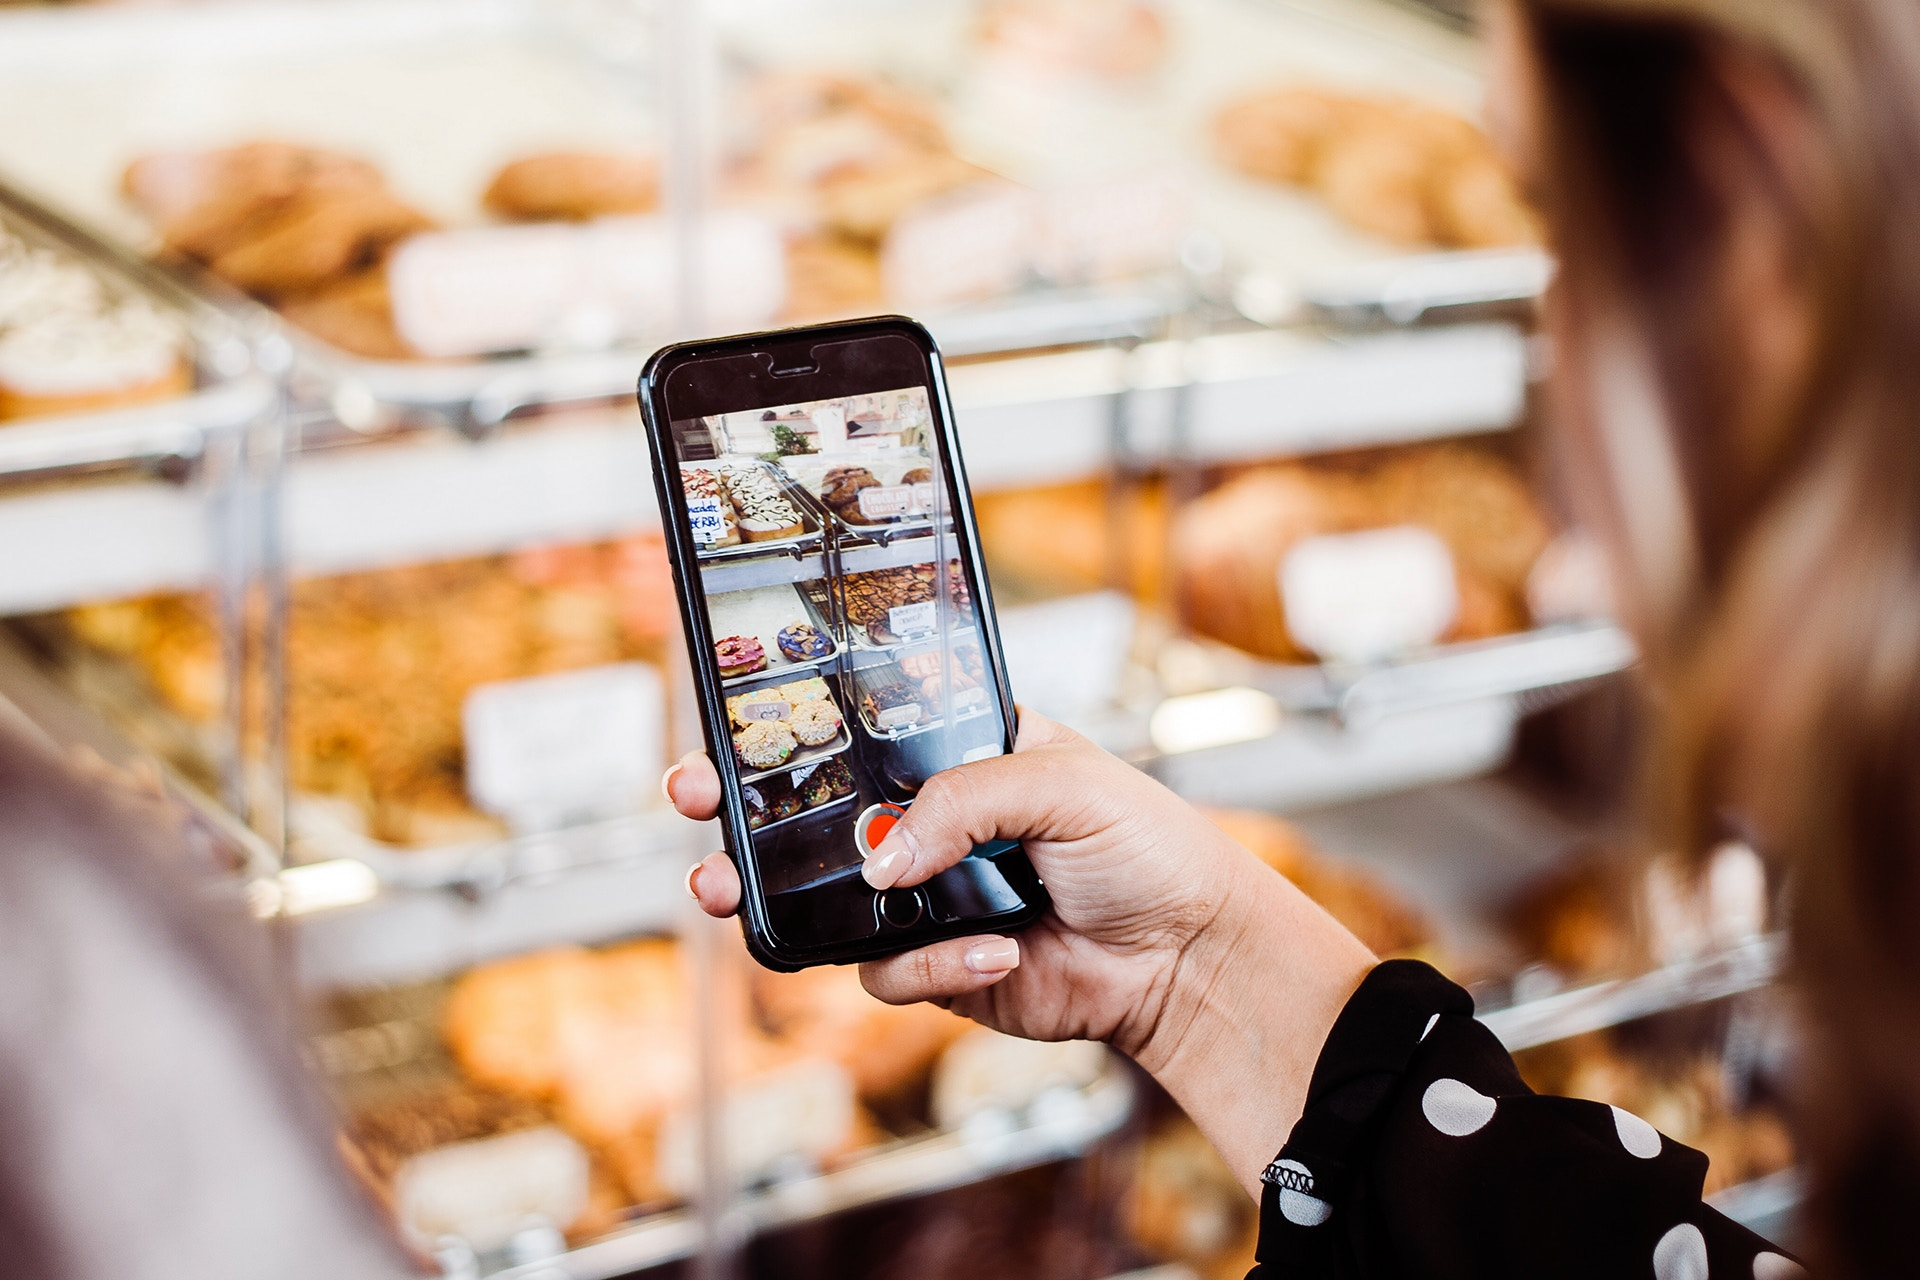 a woman using her phone to take a photo of pastries